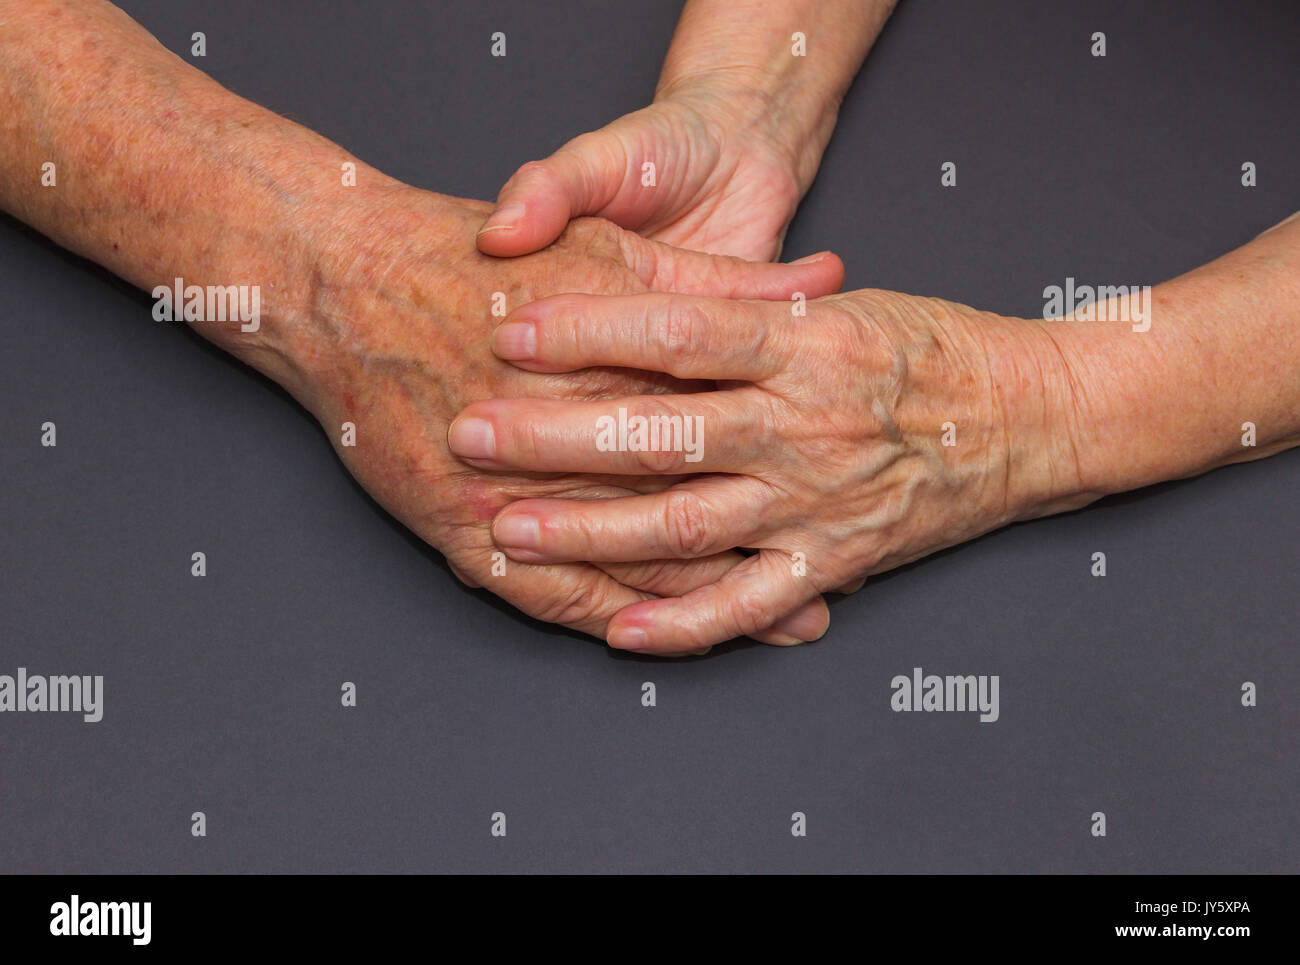 Hands of two loving senior people on a dark background - Stock Image